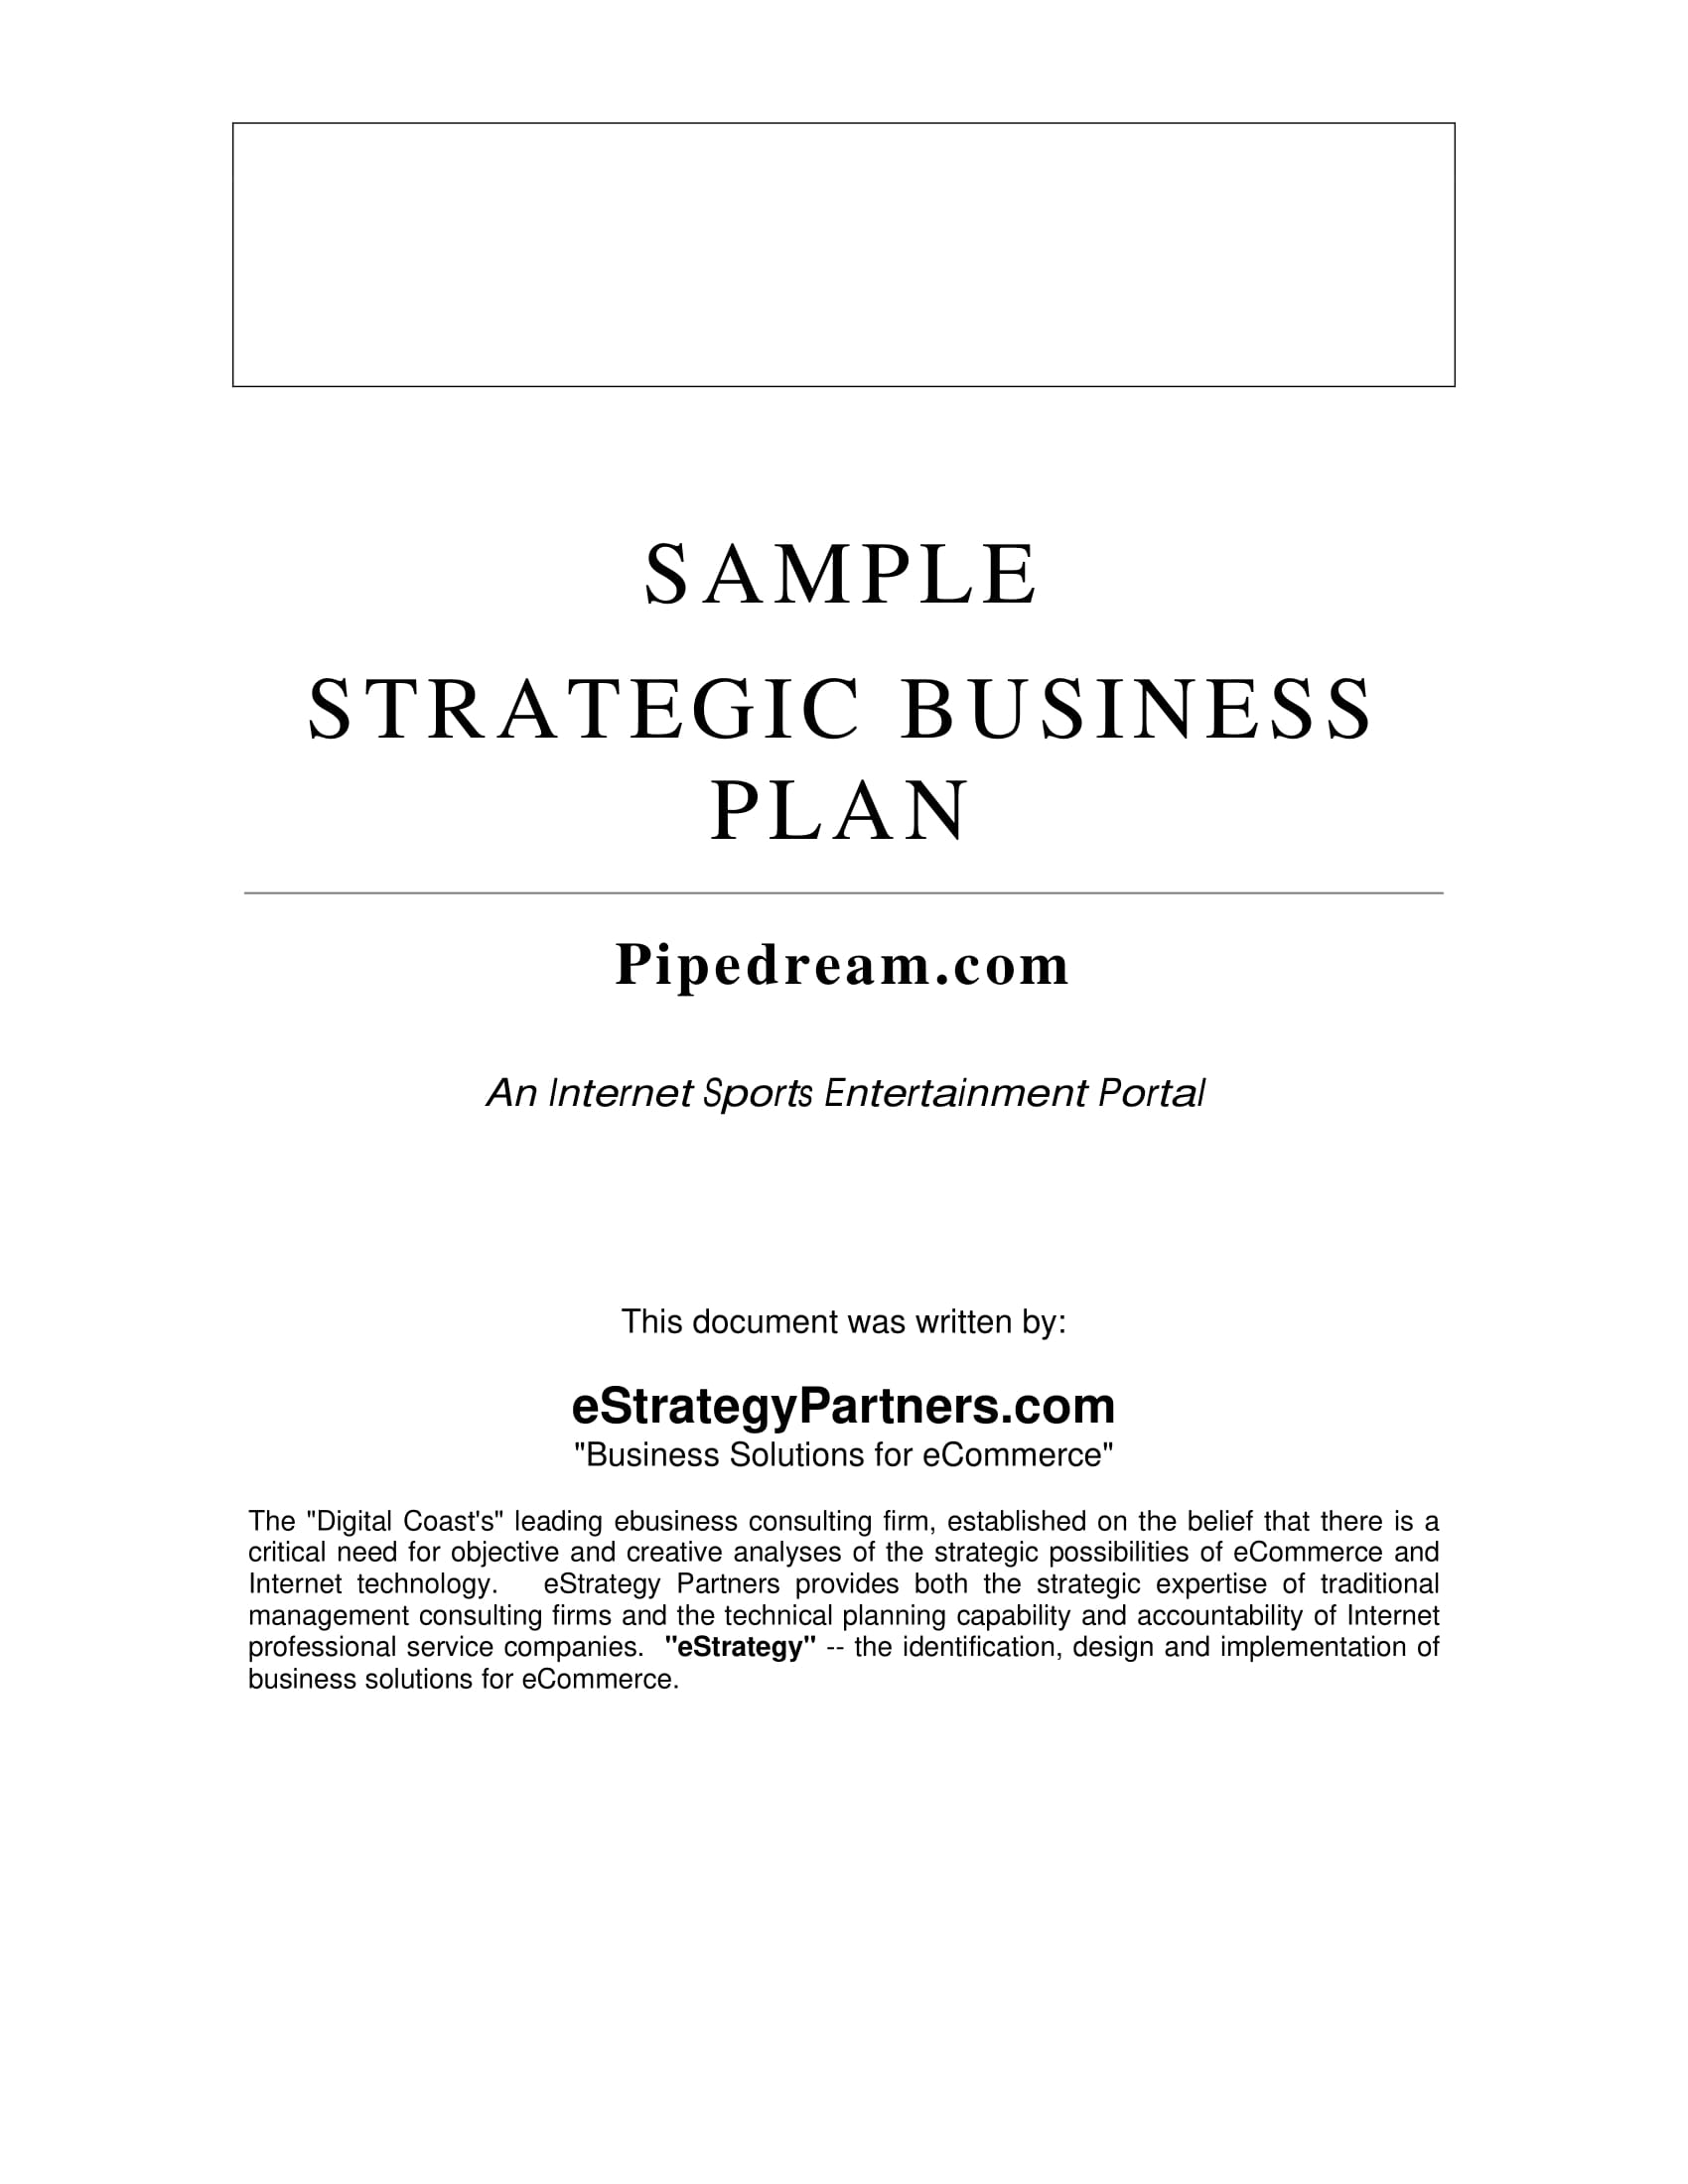 strategic business plan for business development example 01